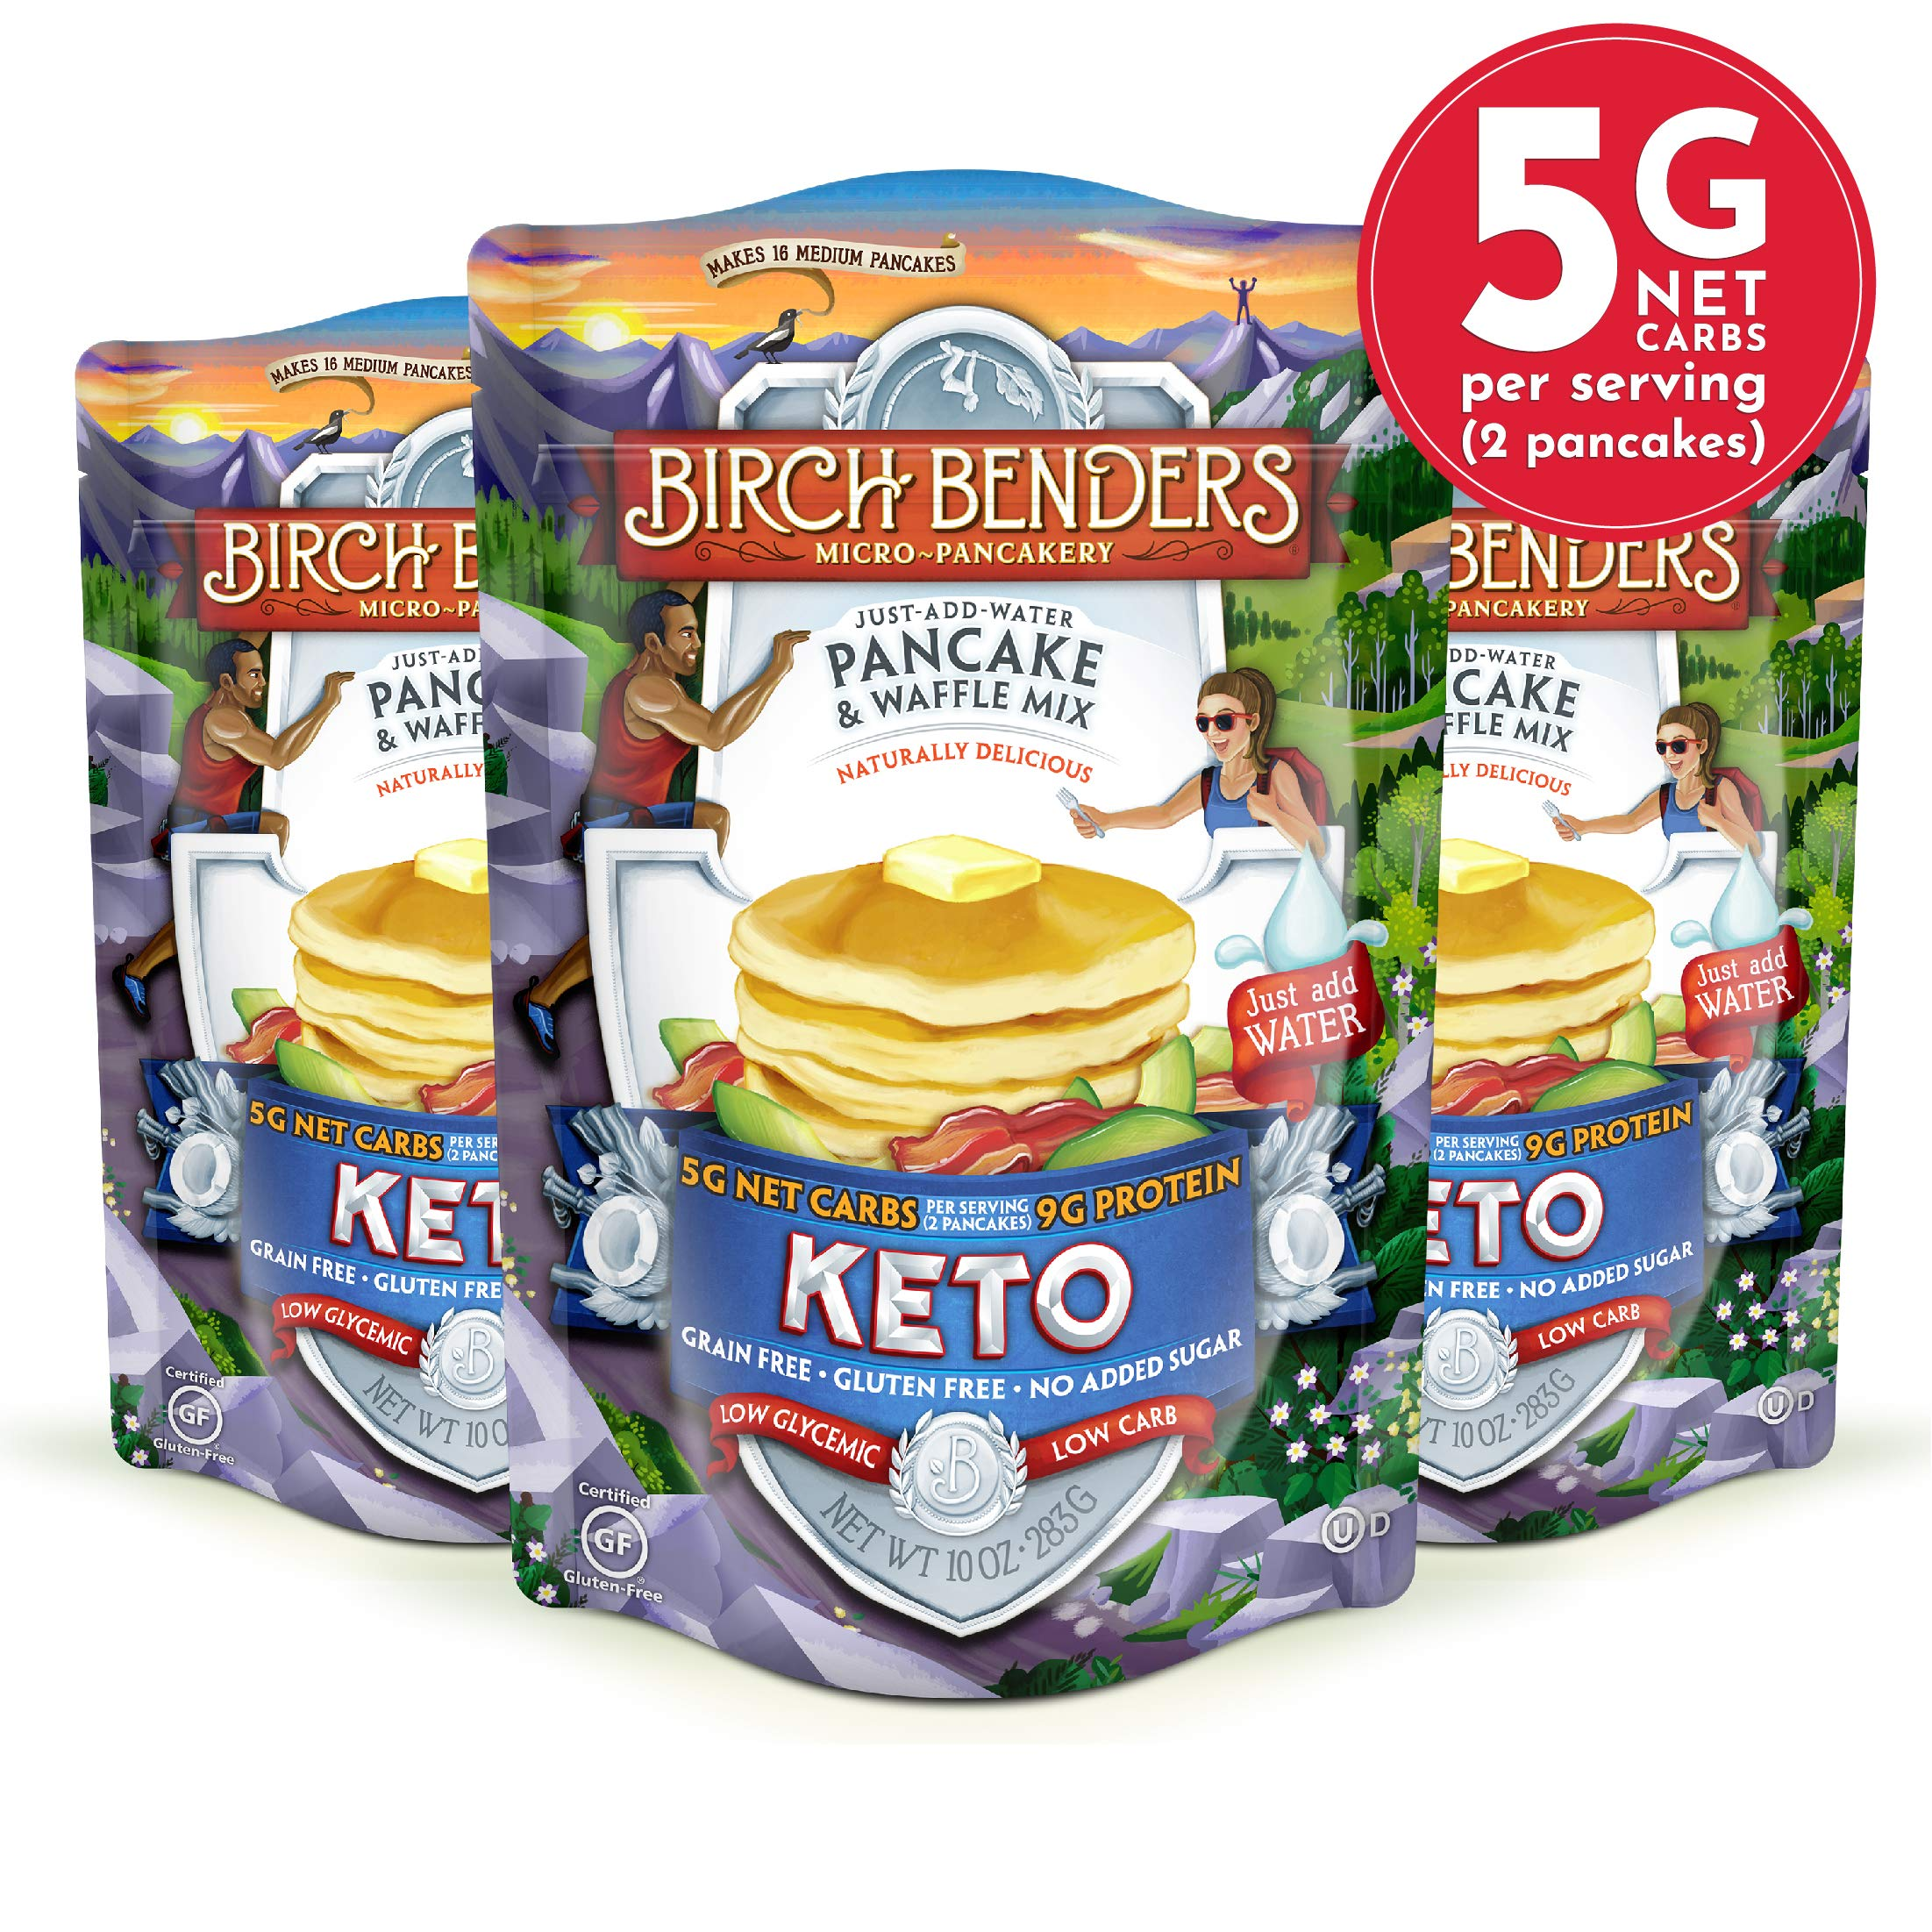 Keto Pancake & Waffle Mix by Birch Benders, Low-Carb, High Protein, Grain-free, Gluten-free, Low Glycemic, Keto-Friendly, Made with Almond, Coconut & Cassava Flour, 3 Pack (10oz each) by Birch Benders